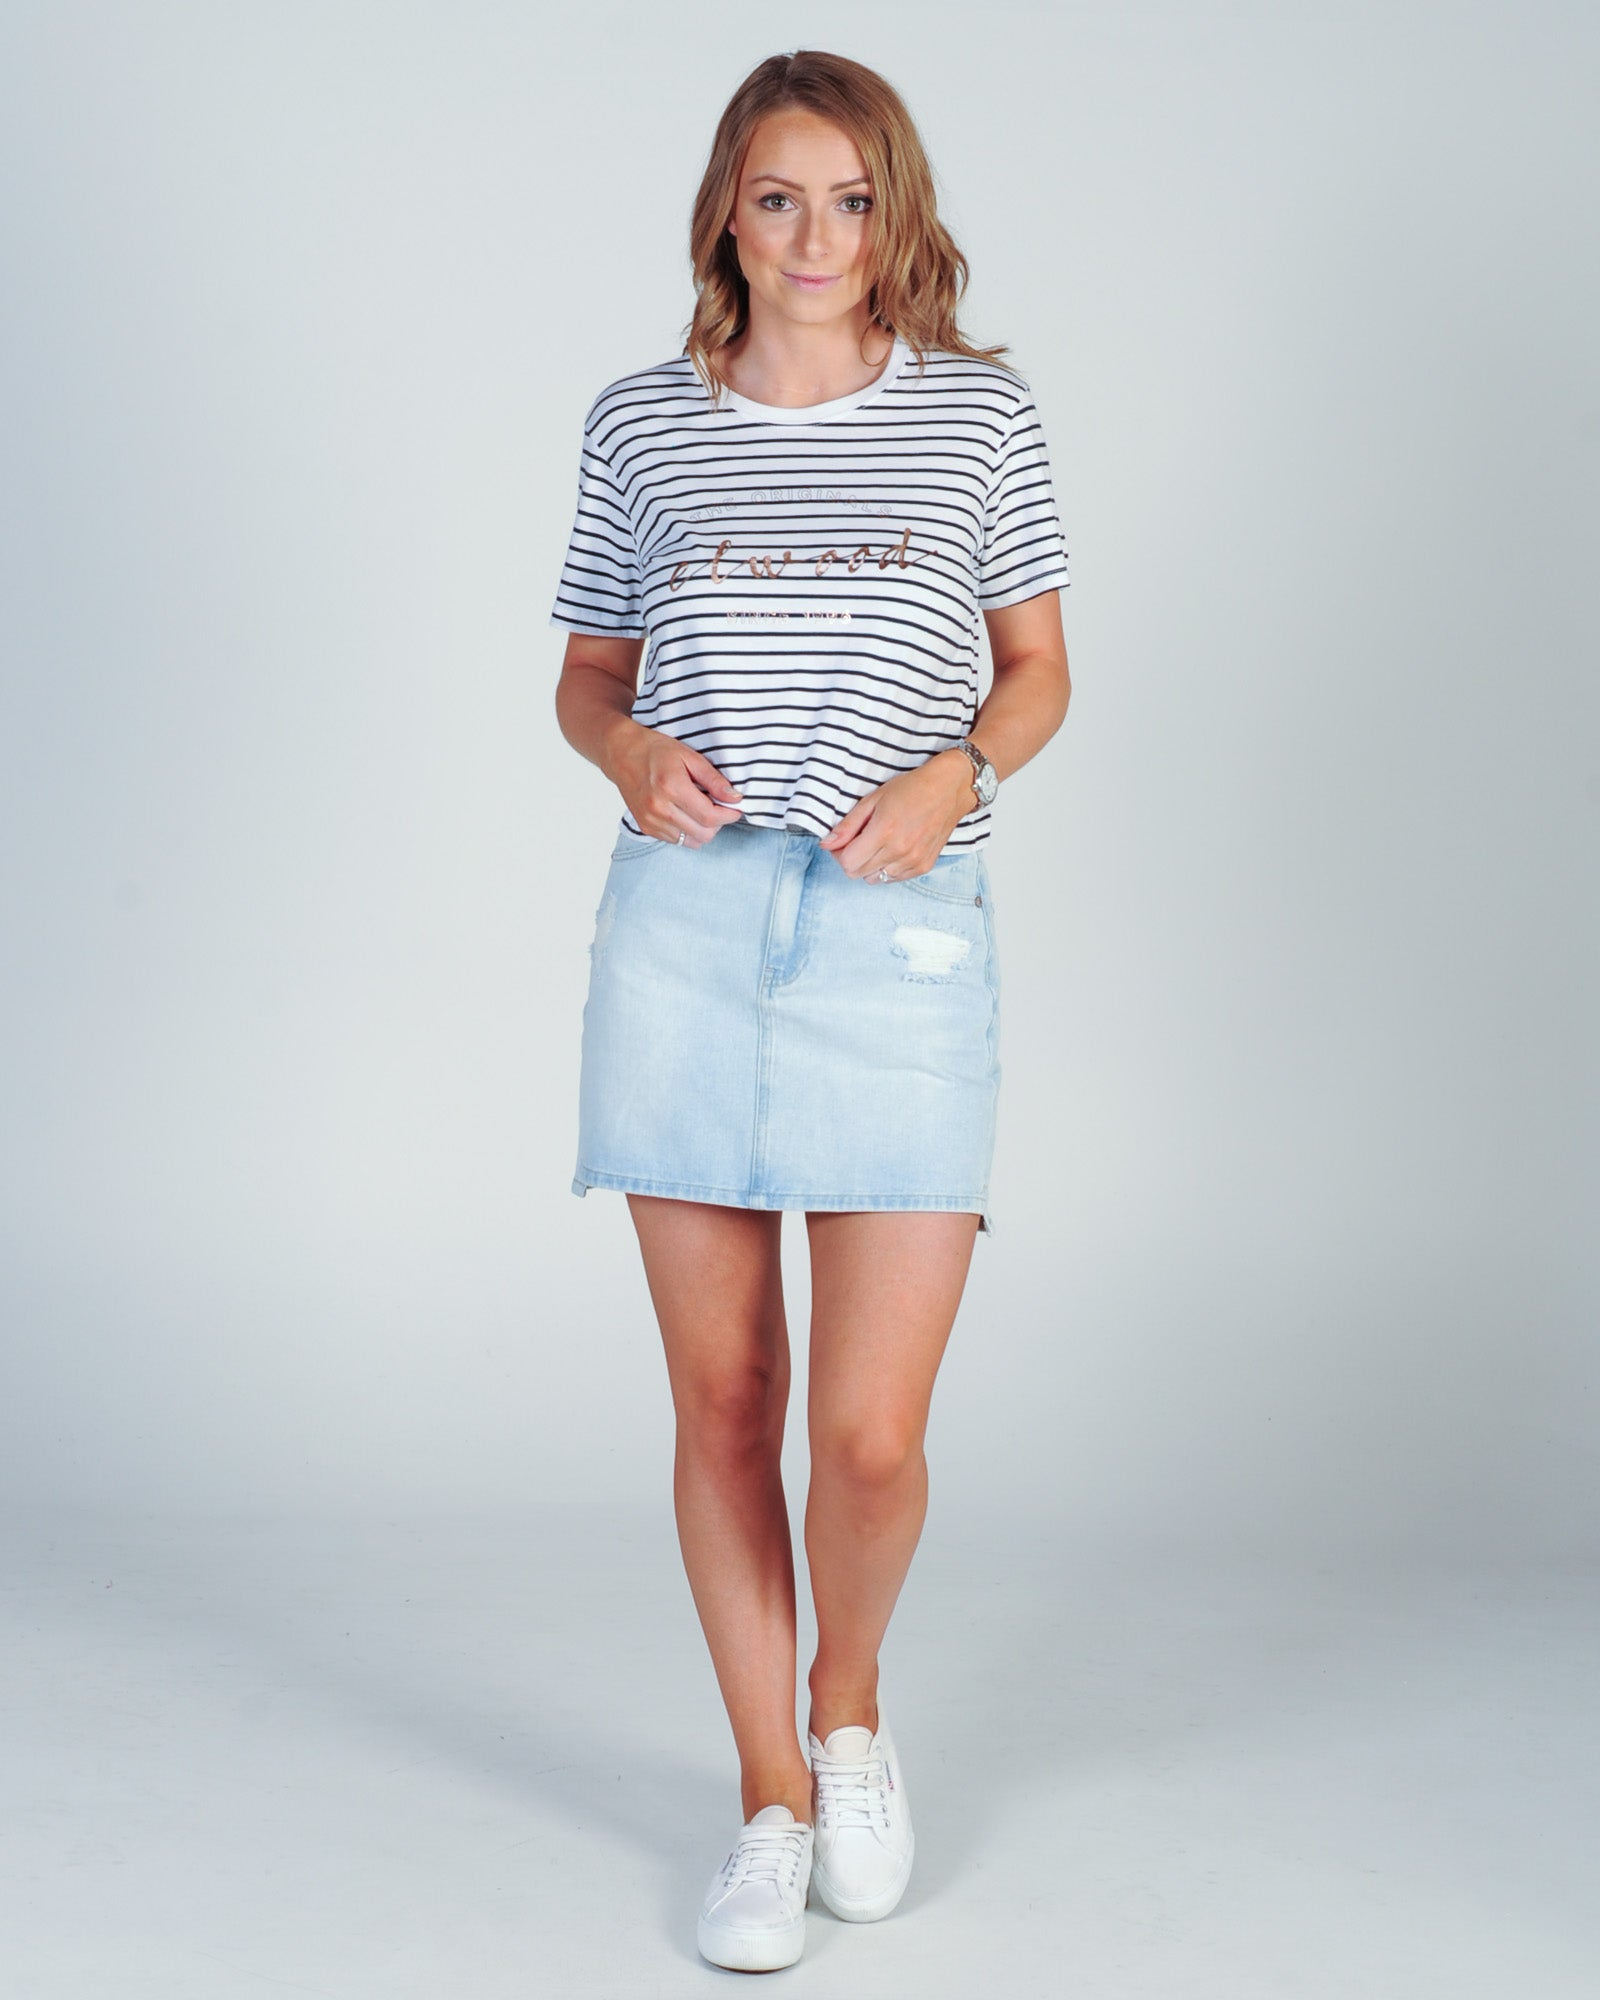 Elwood Ruby Crop Tee - Navy Stripe